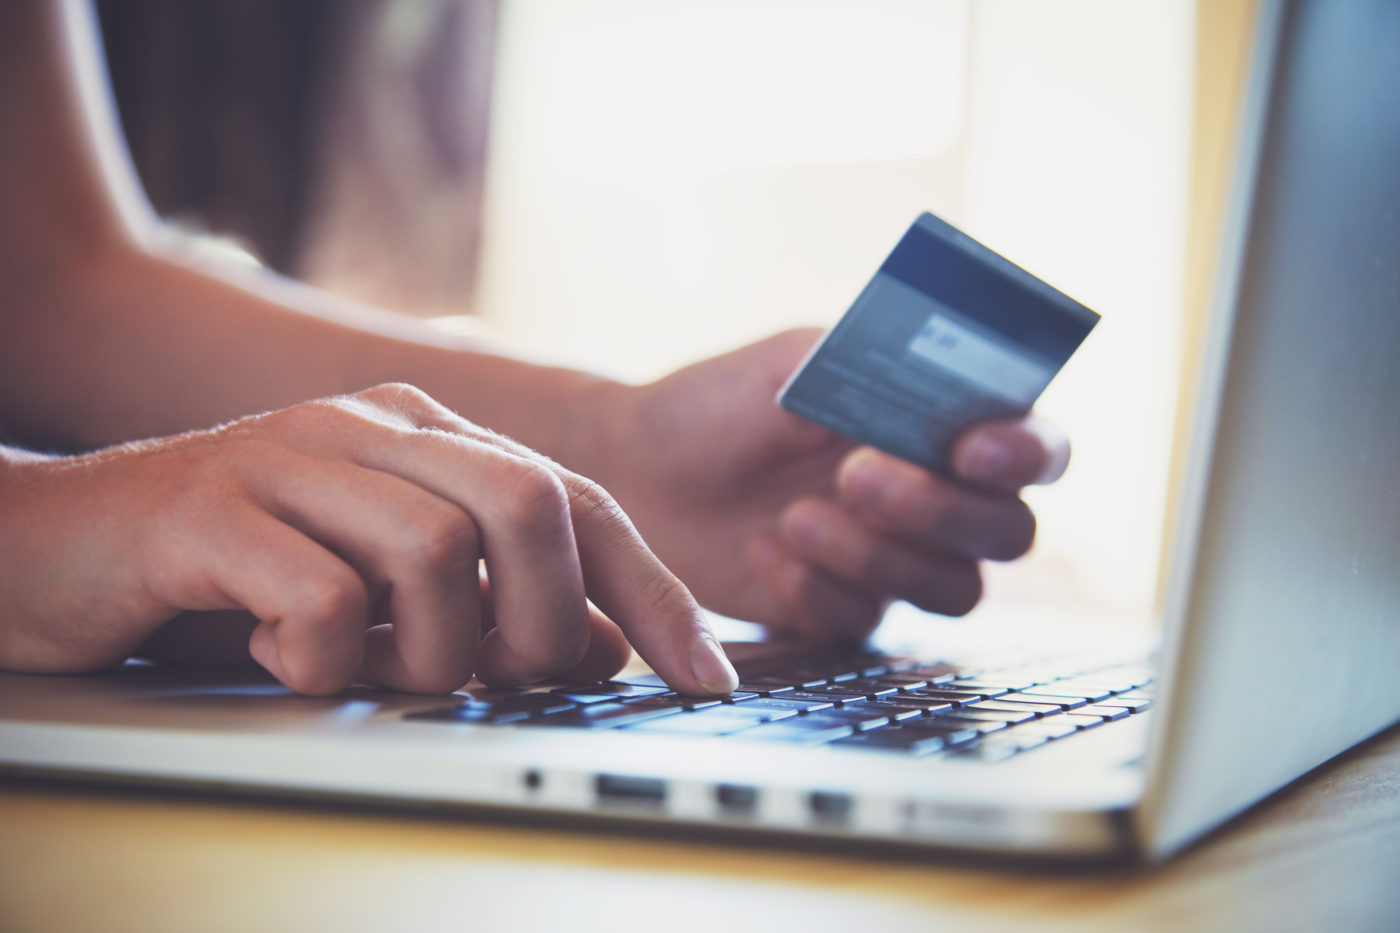 person using credit cards on laptop